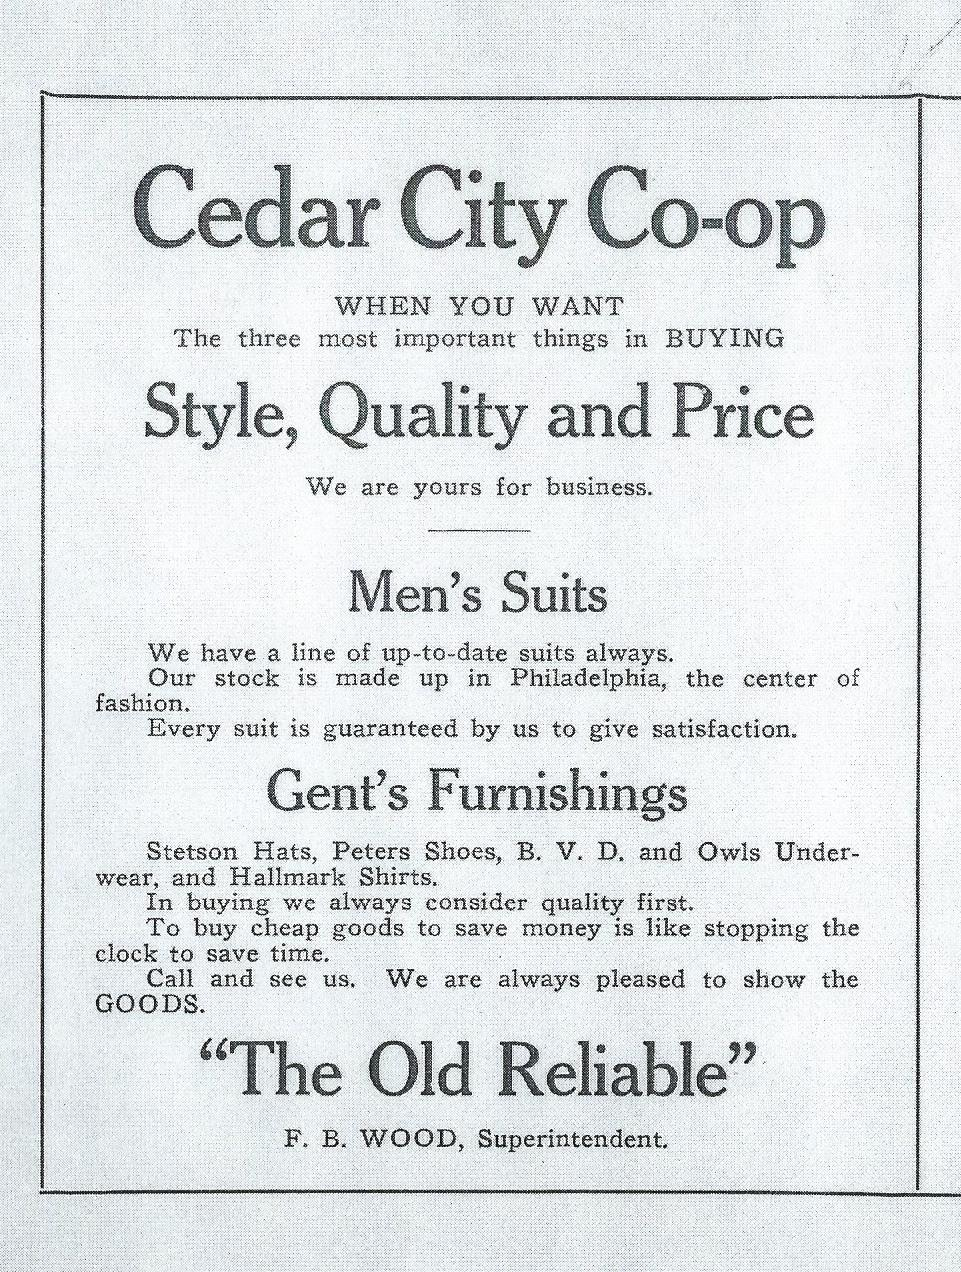 1915 Cedar City Co-op ad.